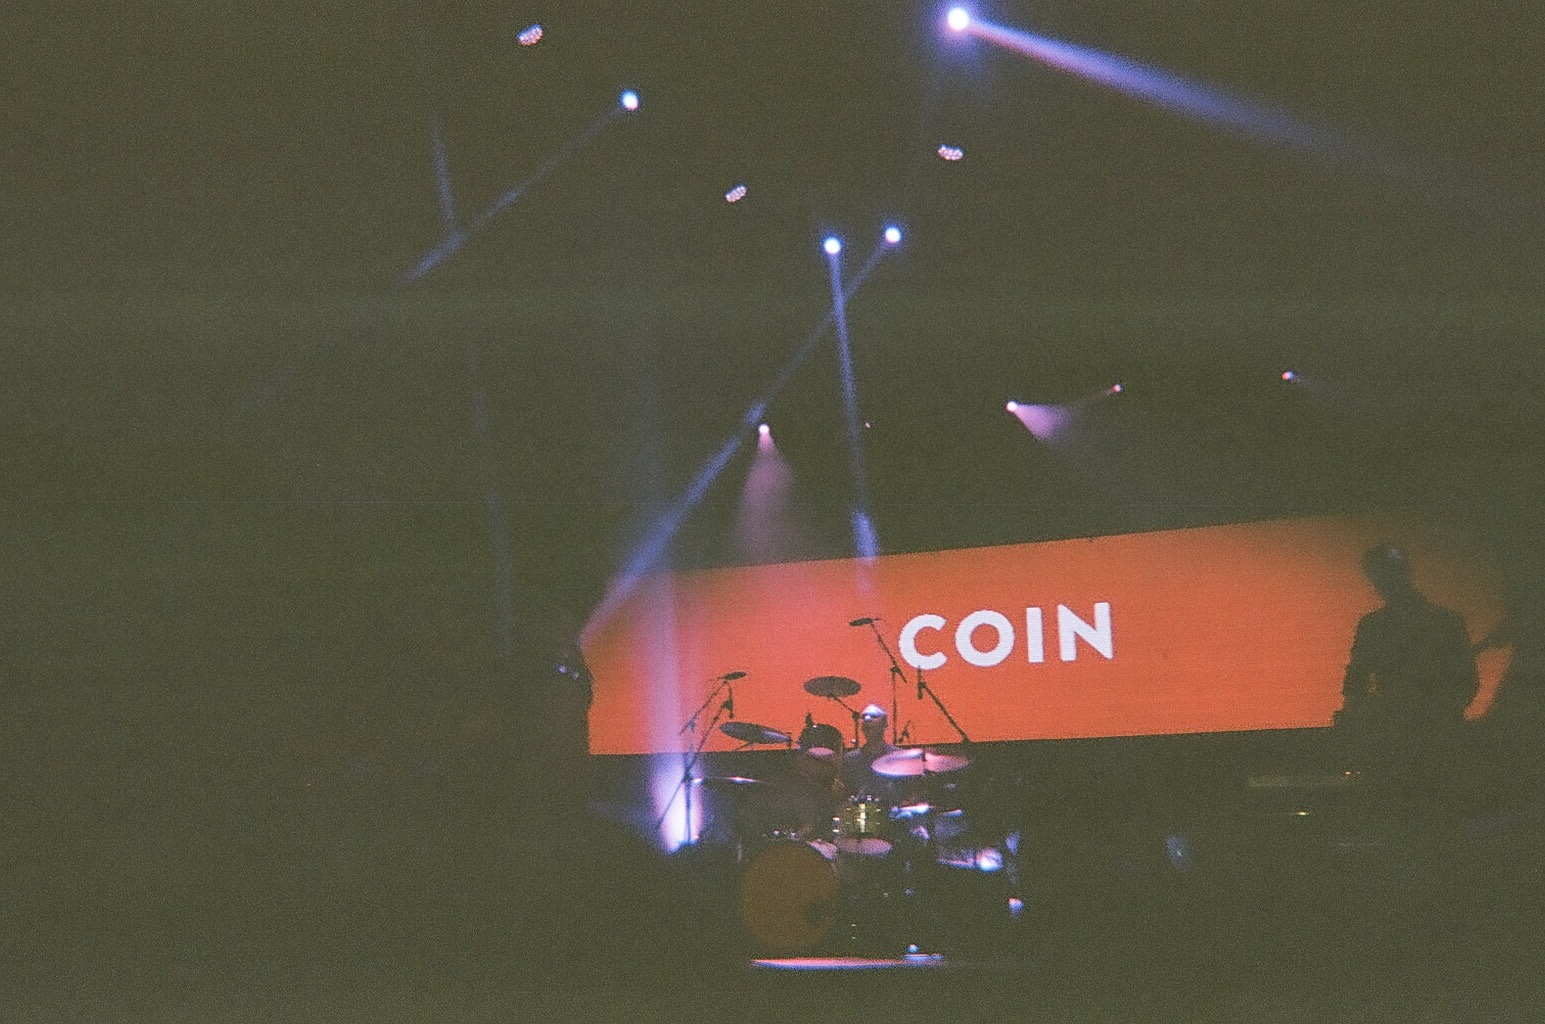 COIN performing at Volapalooza.